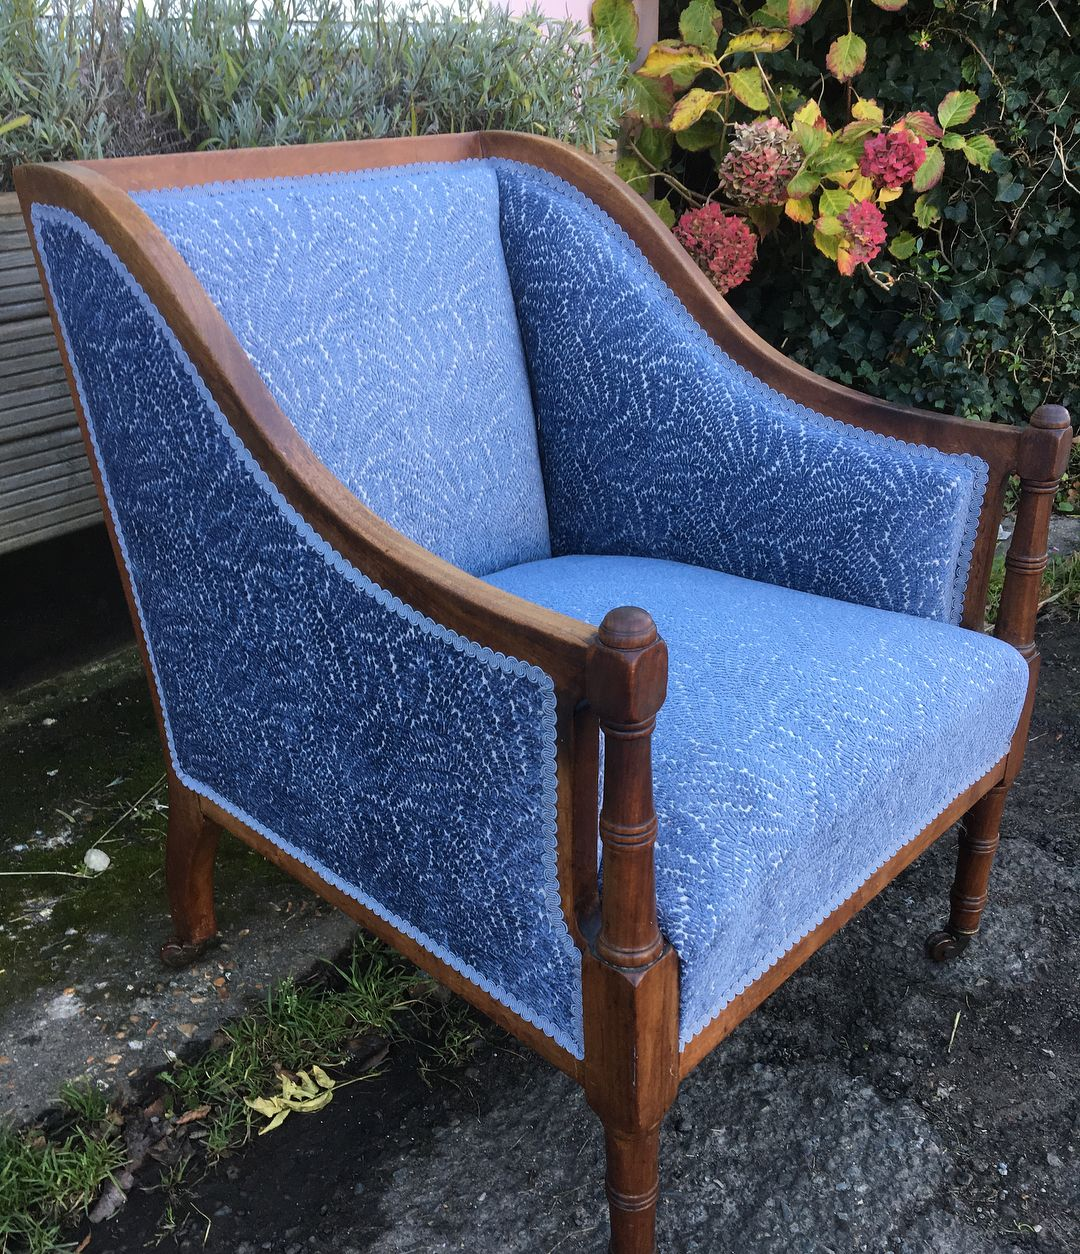 Colefaxandfowler Fabric Working Well With This Beautiful Edwardian Chair Upholstery Colefaxandfowler Chair Antique Antiques A Upholstery Chair Furniture